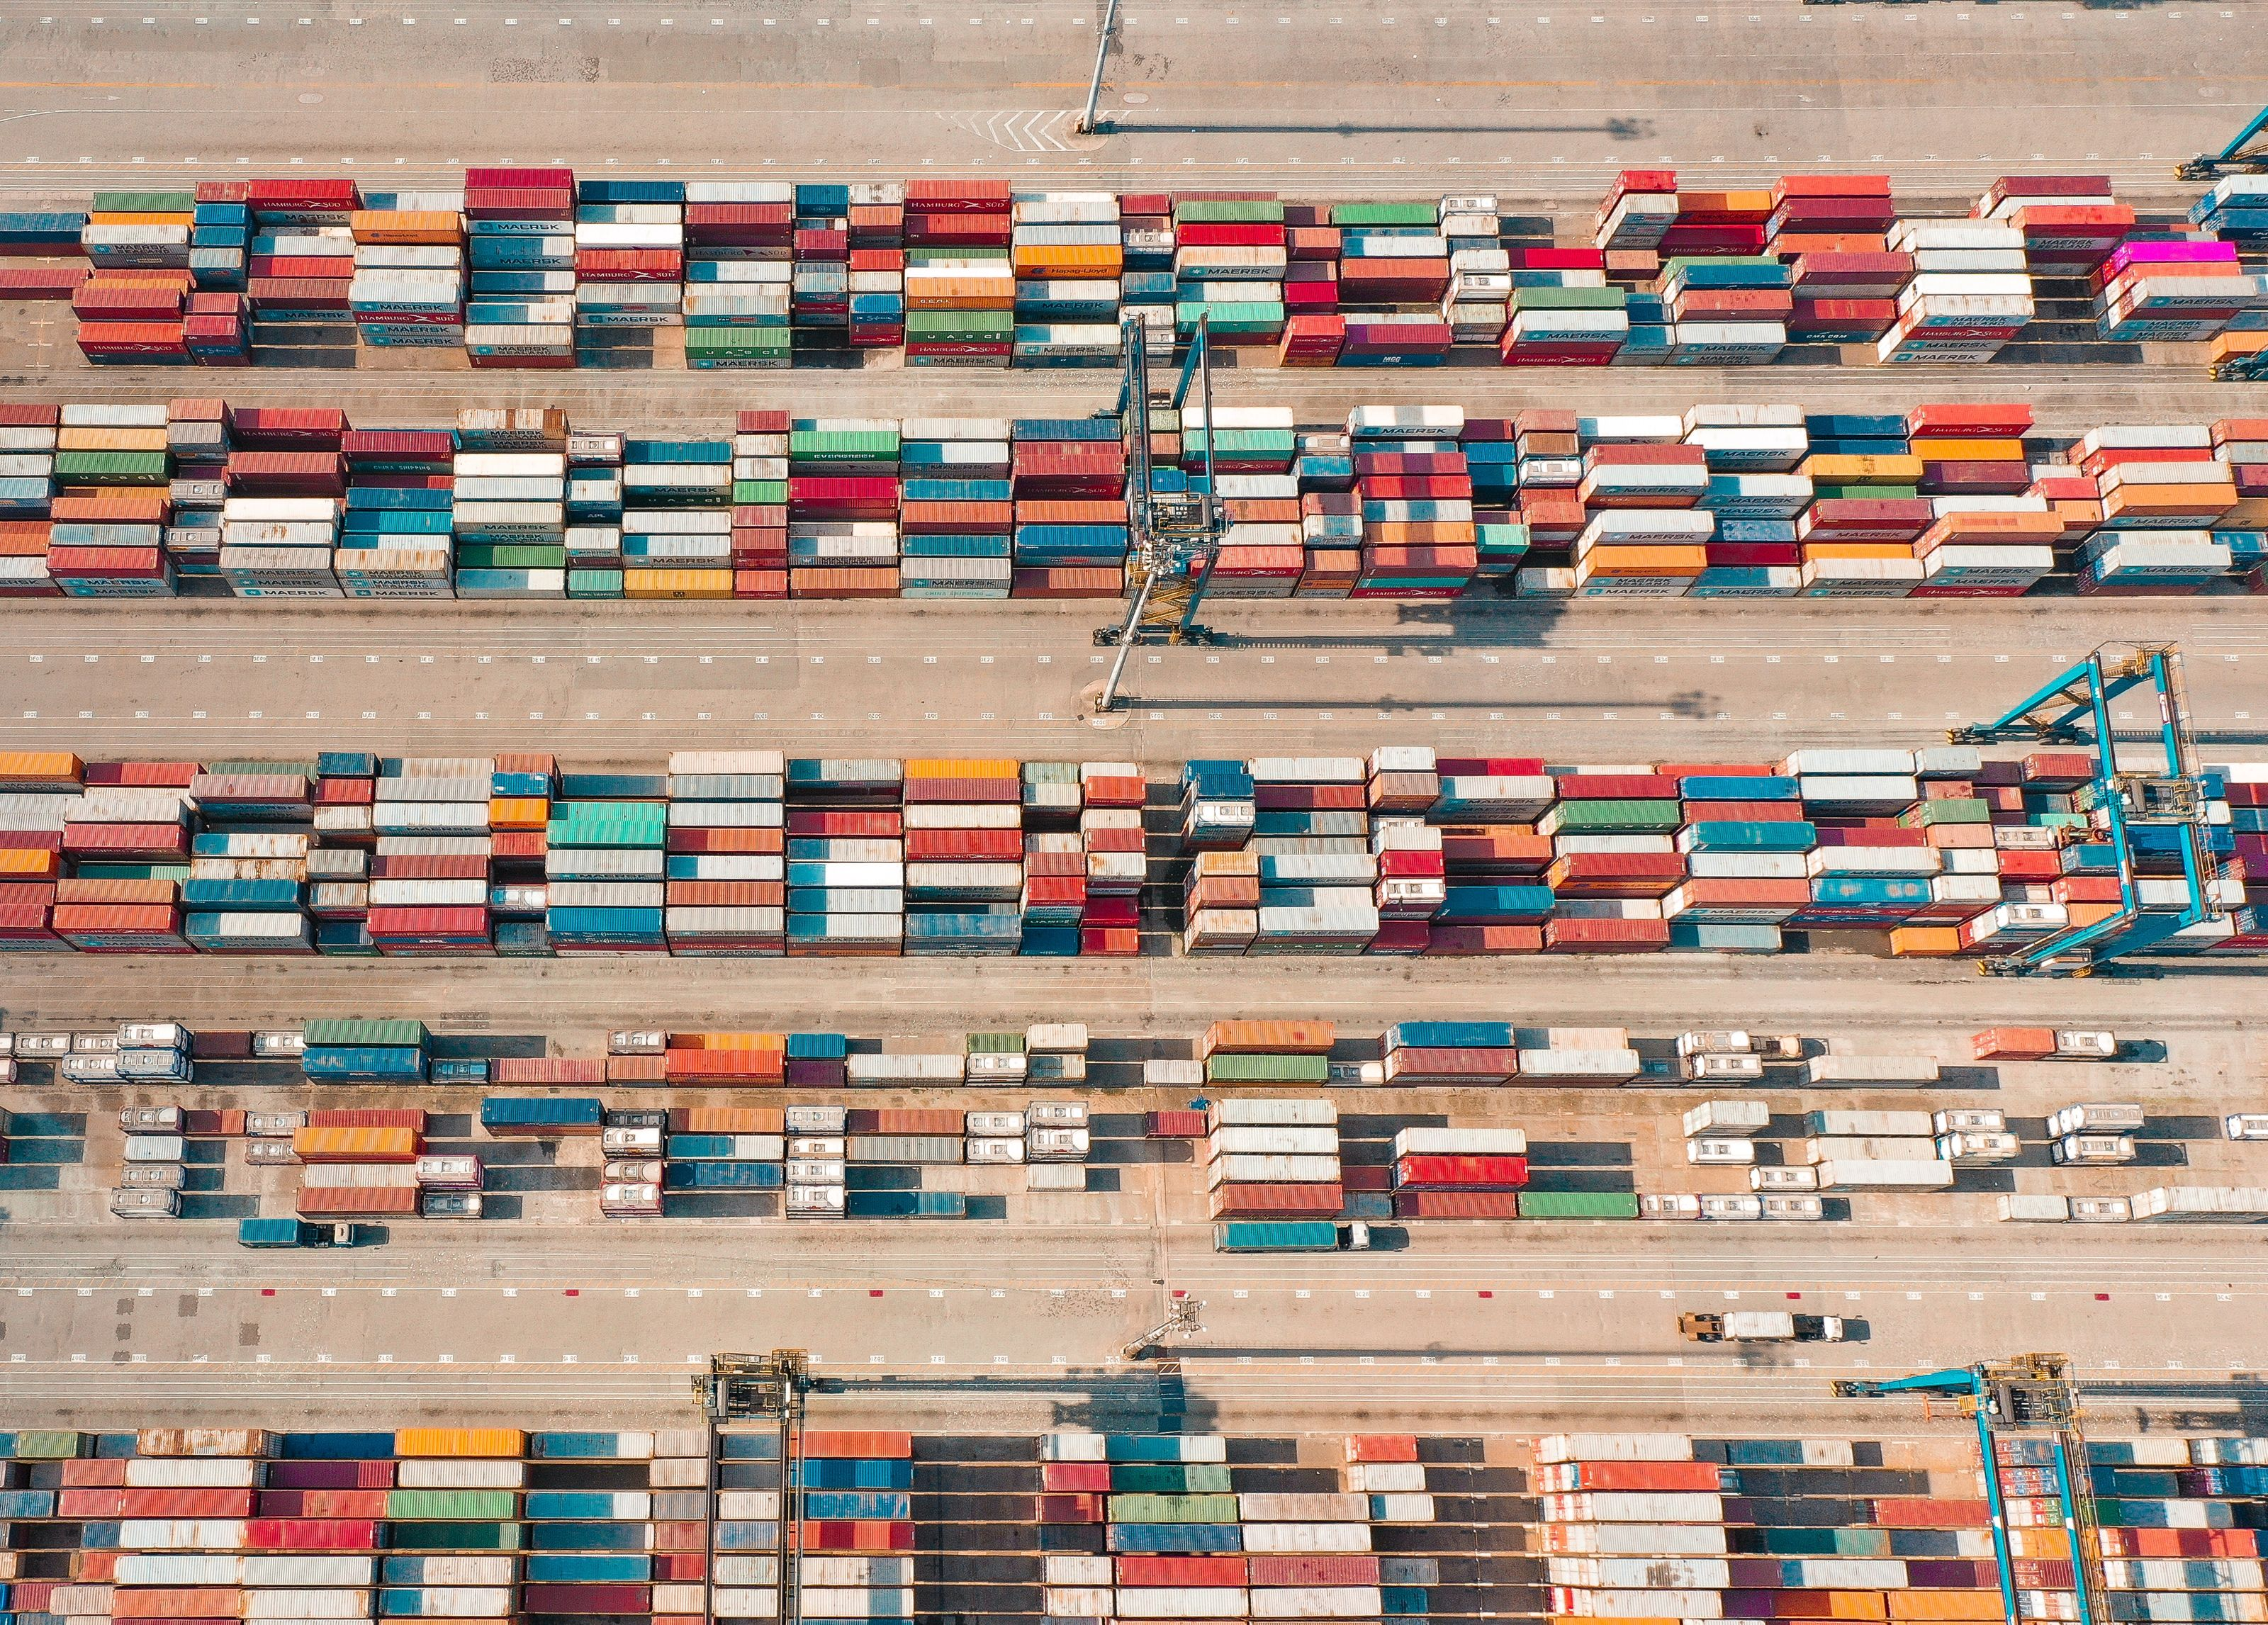 Aerial view of shipping containers.